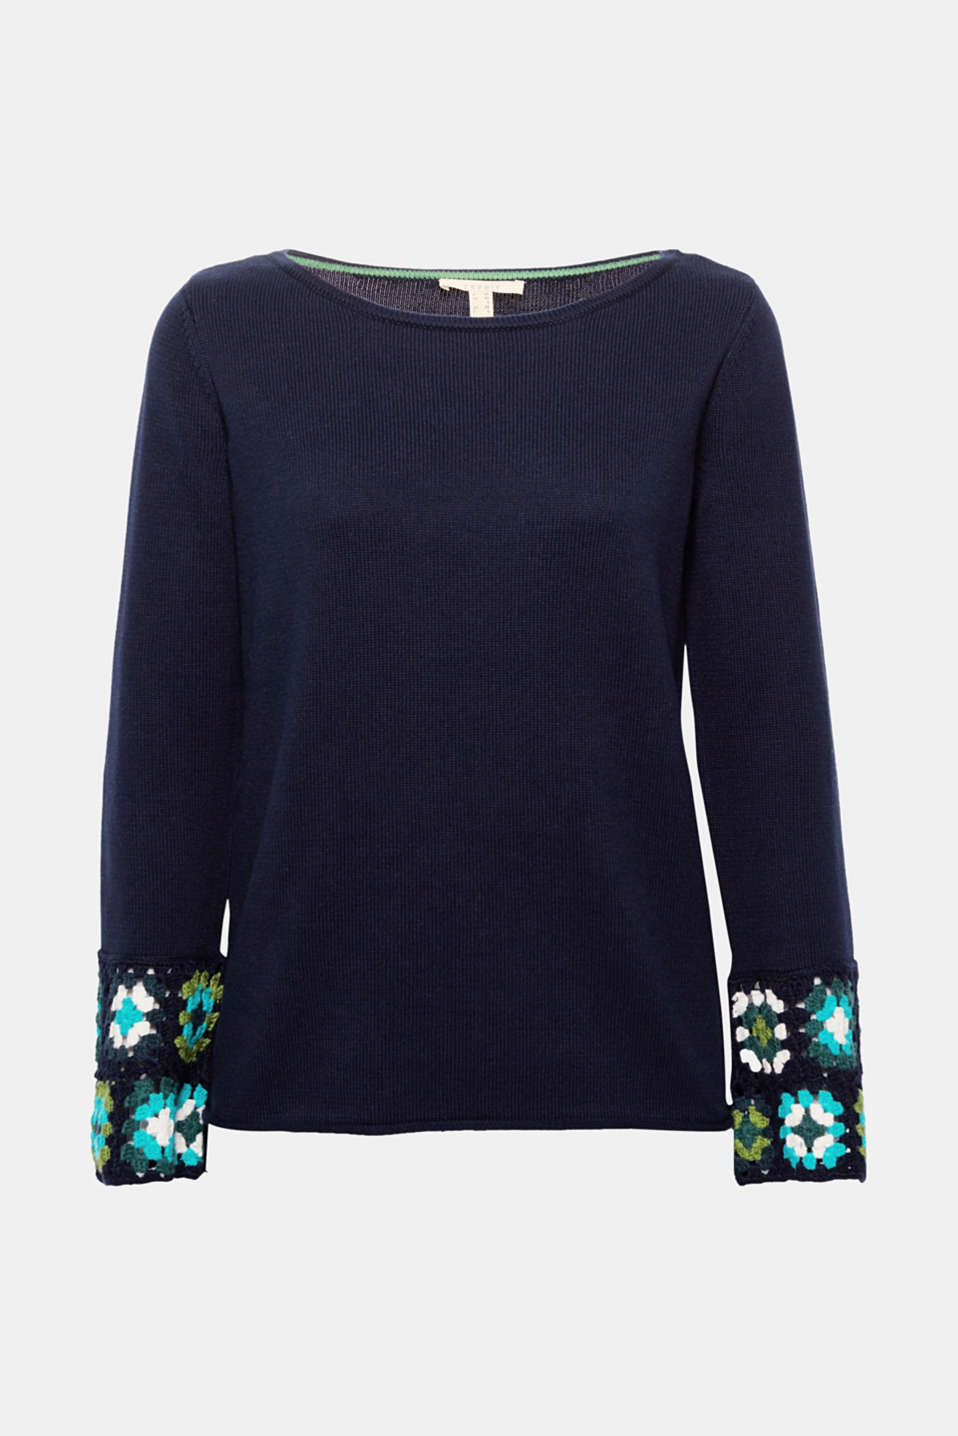 The colourful crocheted sections on the sleeve ends give this comfortable cotton jumper its fashionable hippie flair!